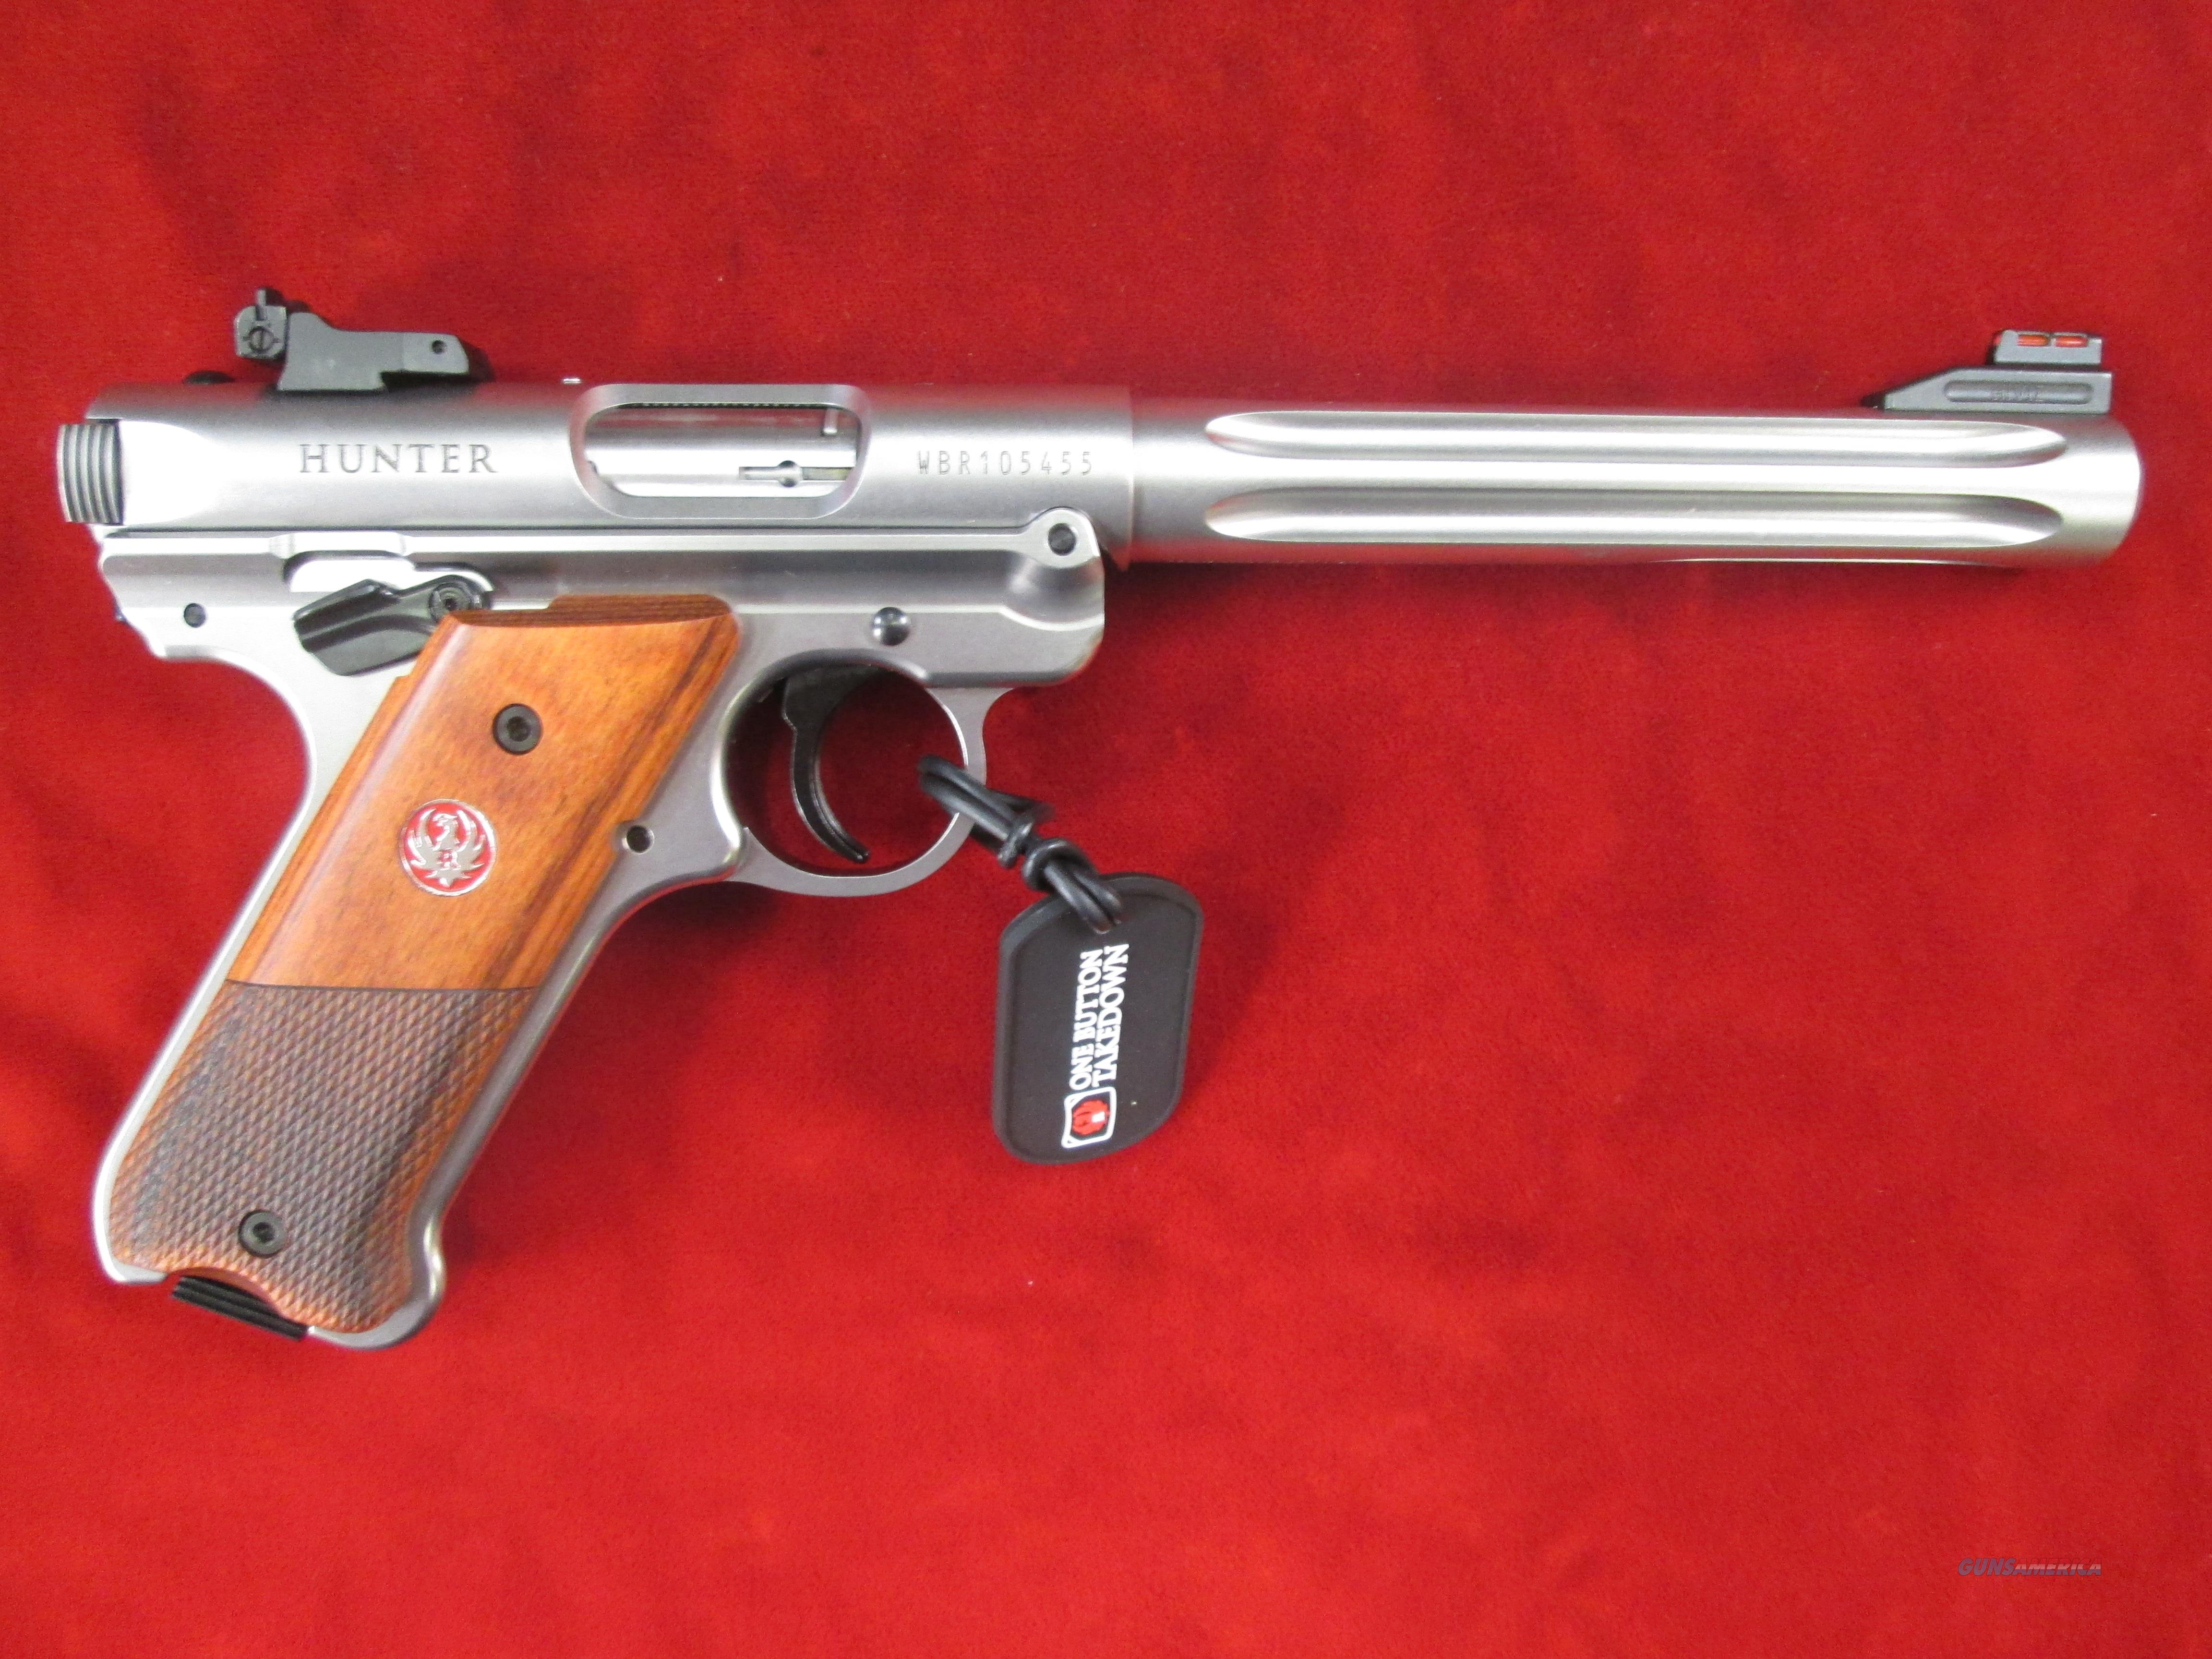 "RUGER MARK IV HUNTER 6 7/8"" STAINLESS FLUTED 22LR NEW (40118)   Guns > Pistols > Ruger Semi-Auto Pistols > Mark I/II/III/IV Family"